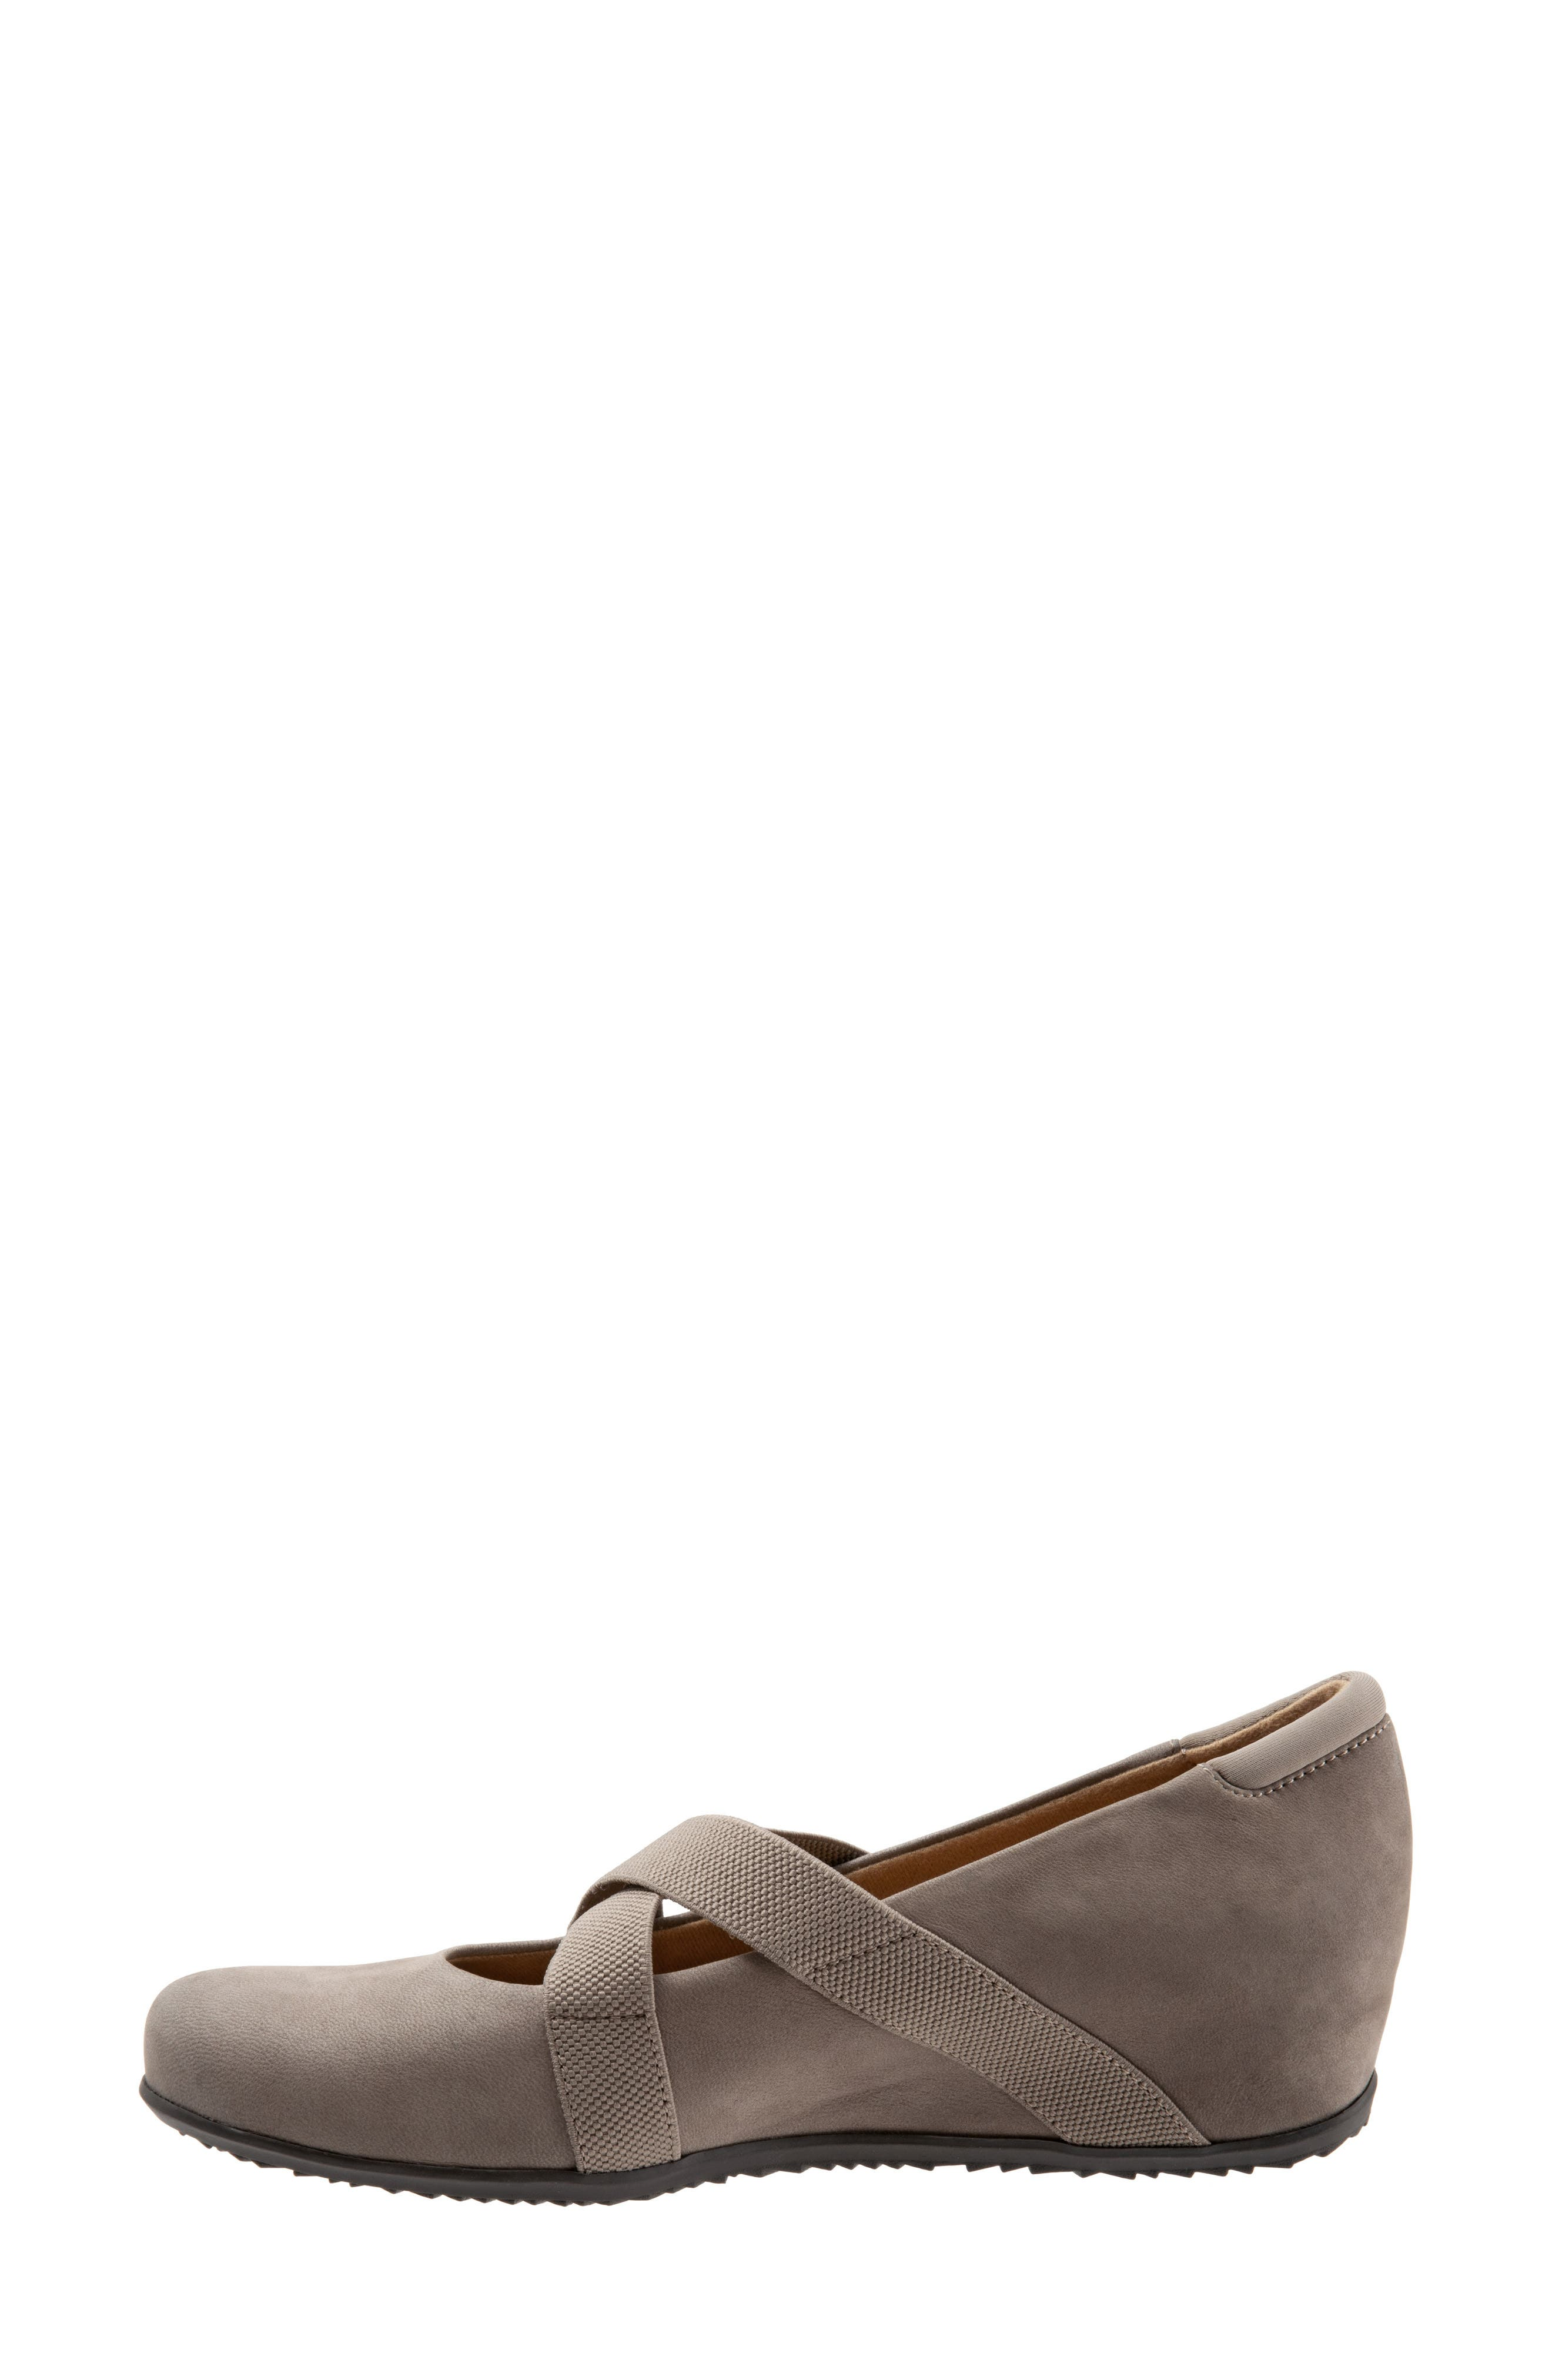 Waverly Mary Jane Wedge,                             Alternate thumbnail 9, color,                             TAUPE LEATHER